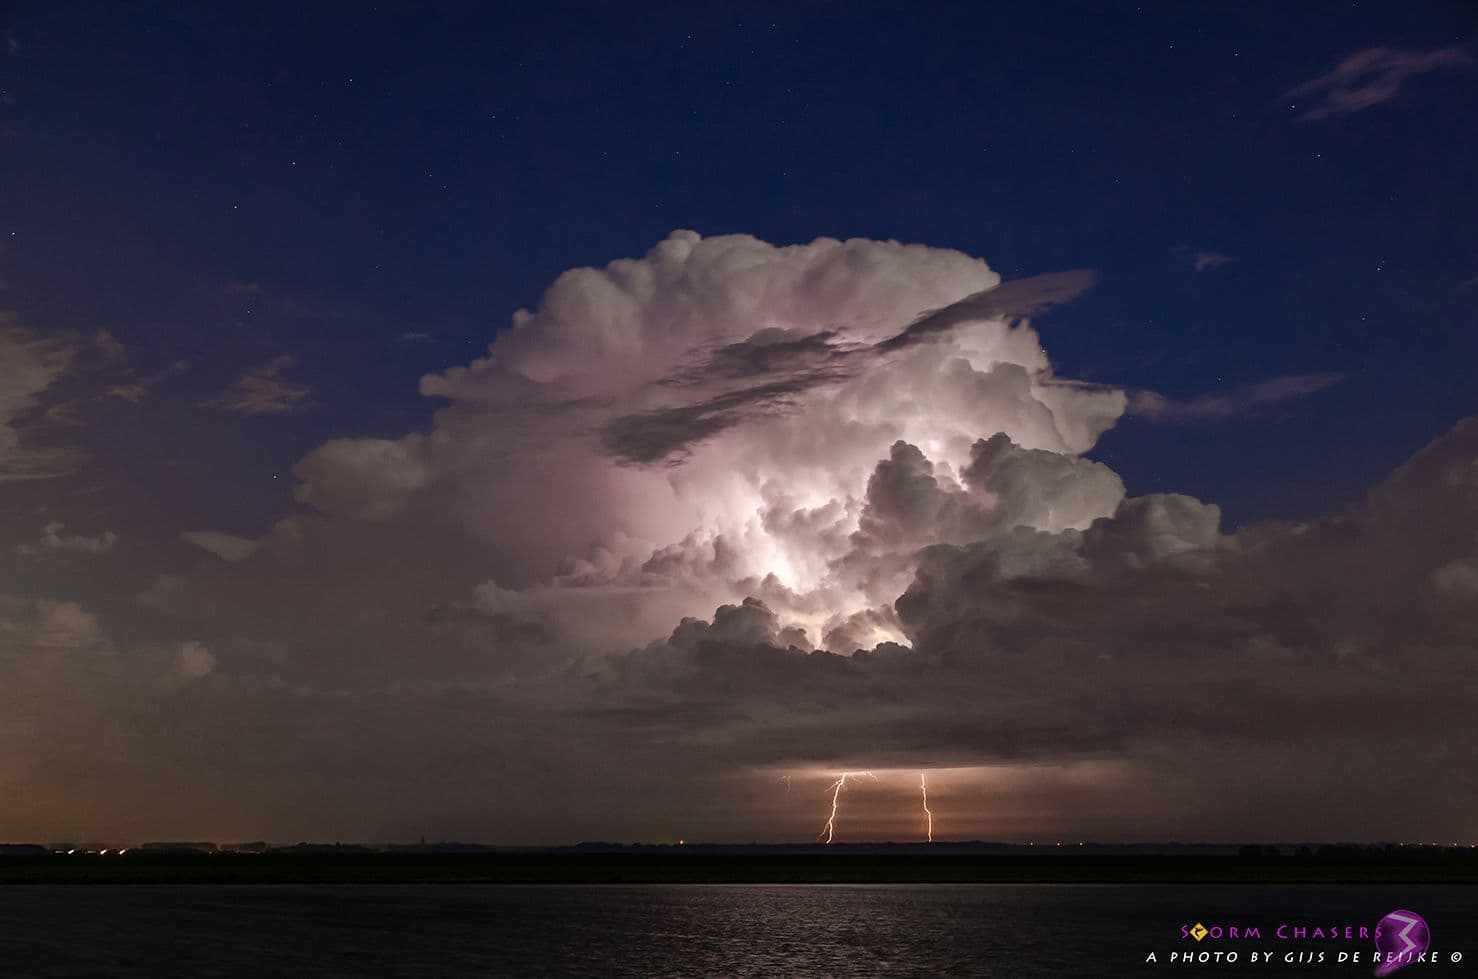 One of yesterday's severe thunderstorms over the Netherlands.